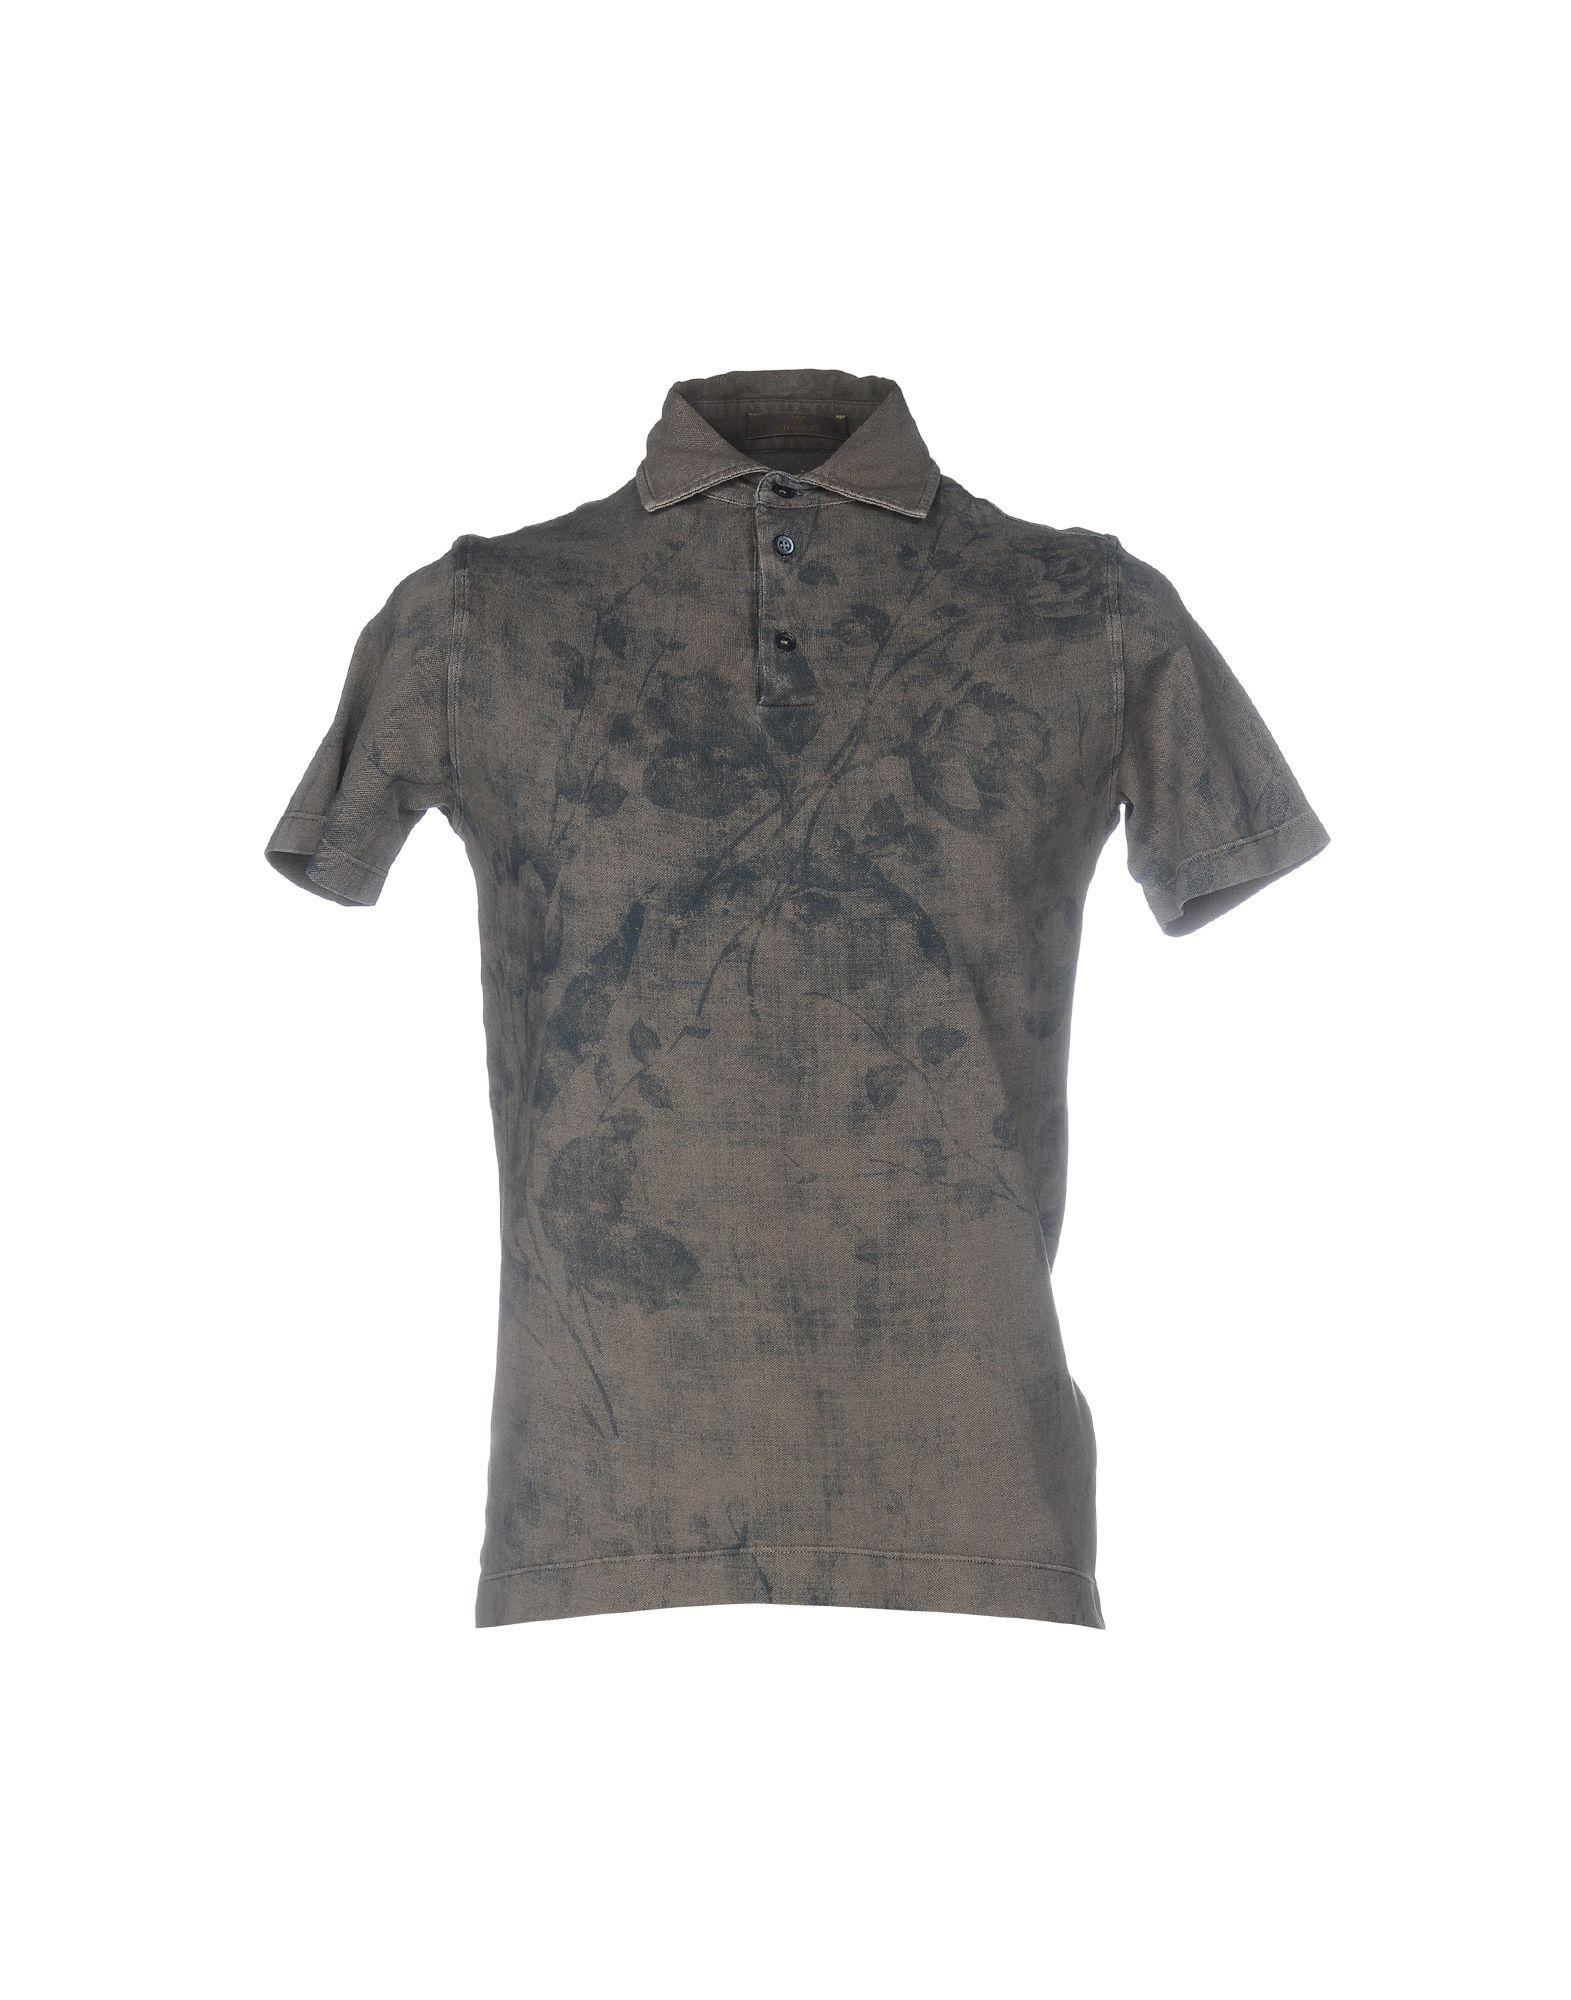 reputable site 0bd25 2a434 Lyst - Cruciani Polo Shirt in Gray for Men